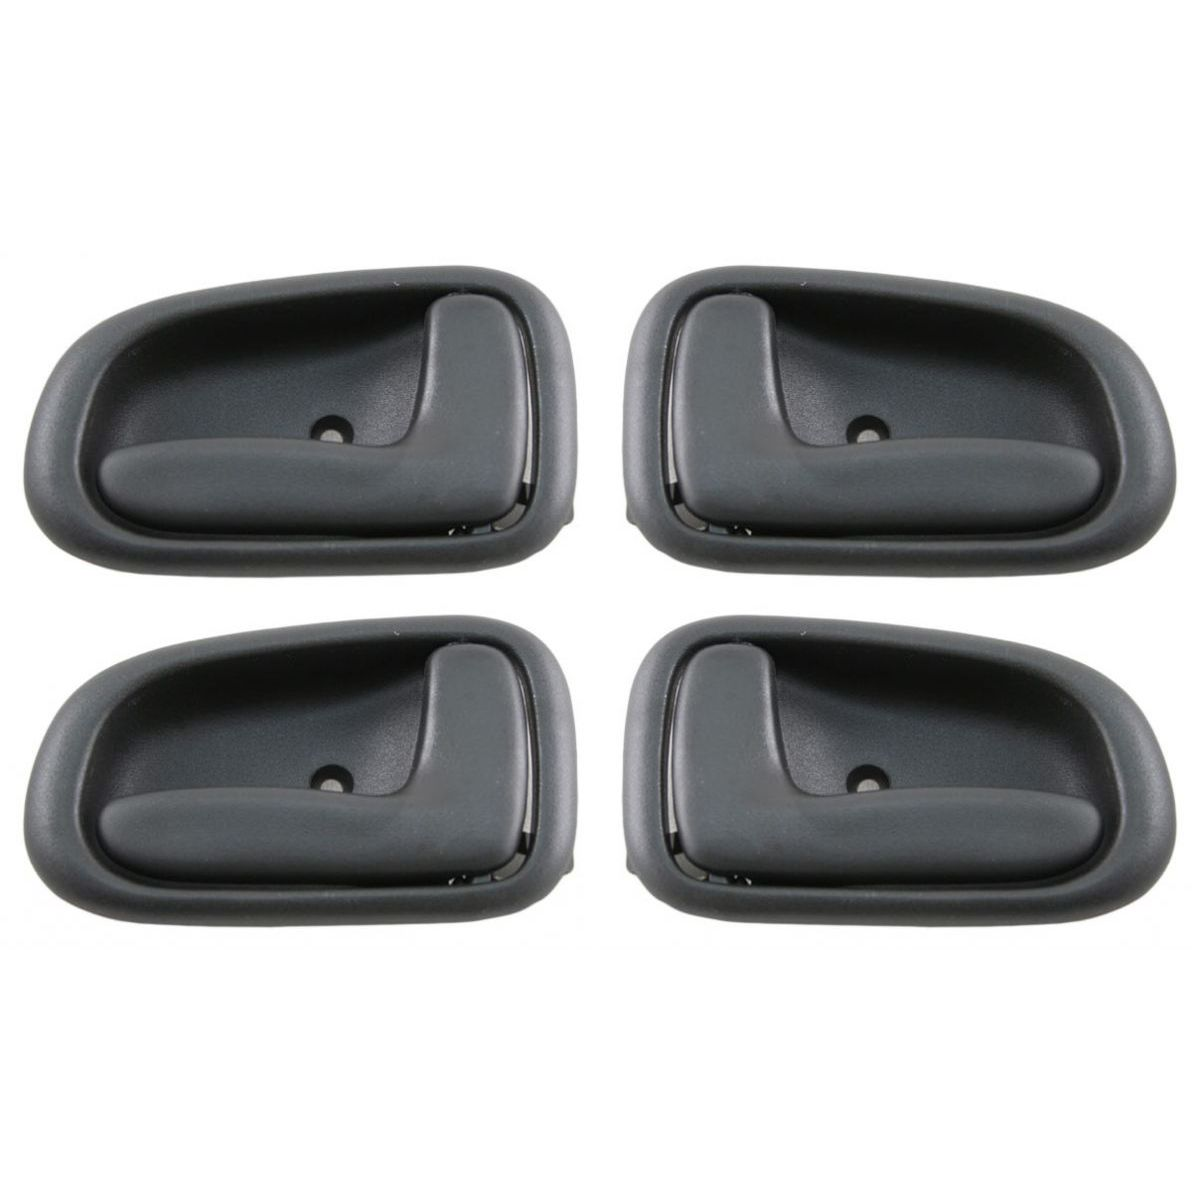 dark gray inner inside interior door handle 4 piece kit set for corolla prizm ebay. Black Bedroom Furniture Sets. Home Design Ideas